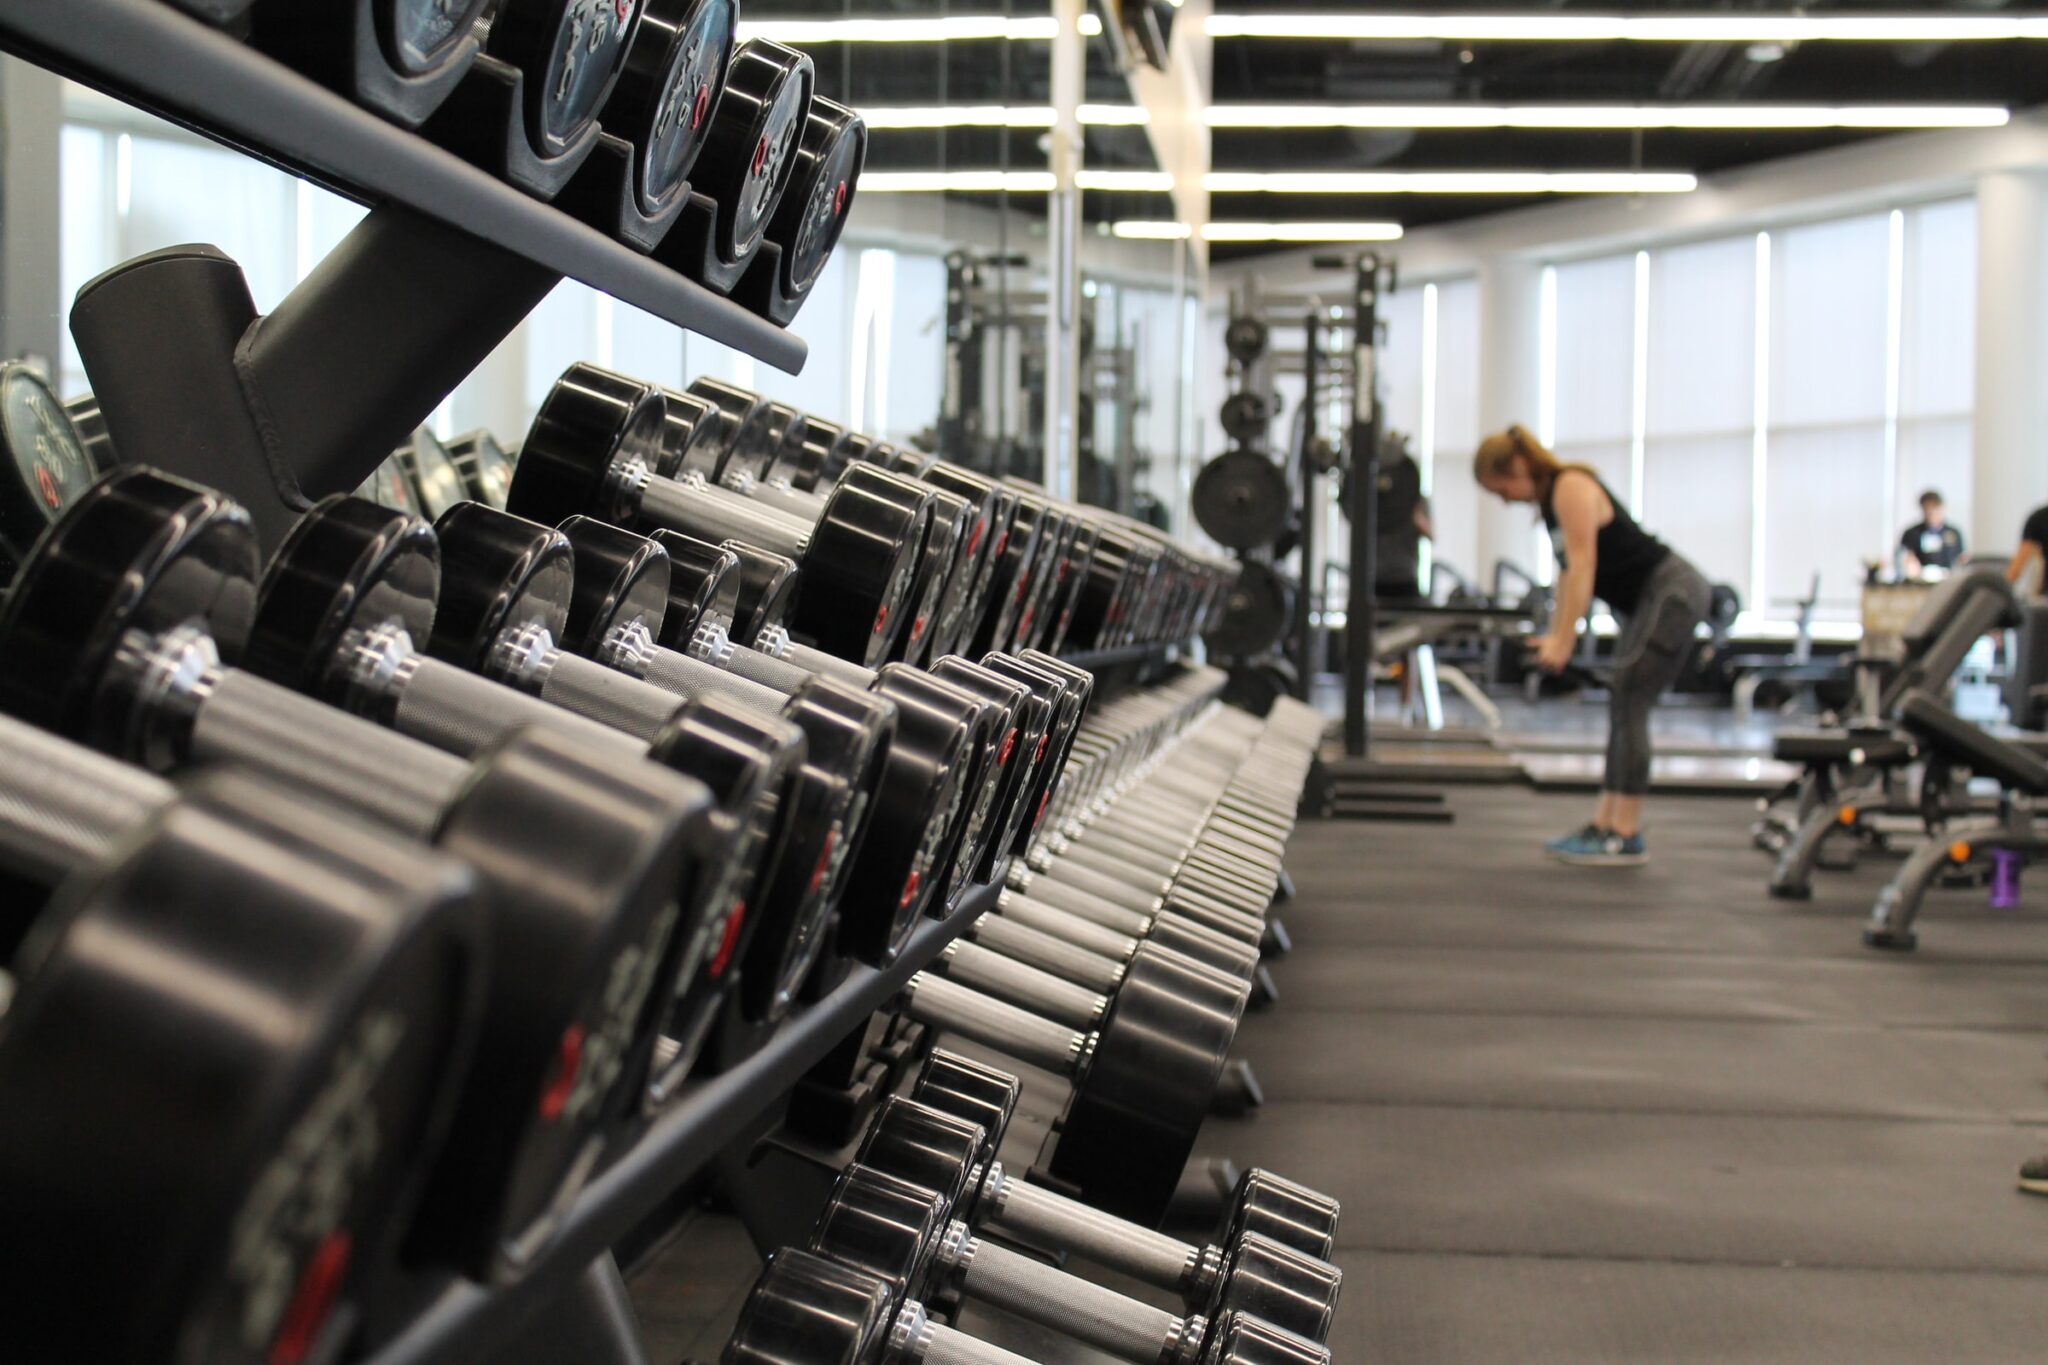 5 Things to Know When You Get a Personal Injury in Gym